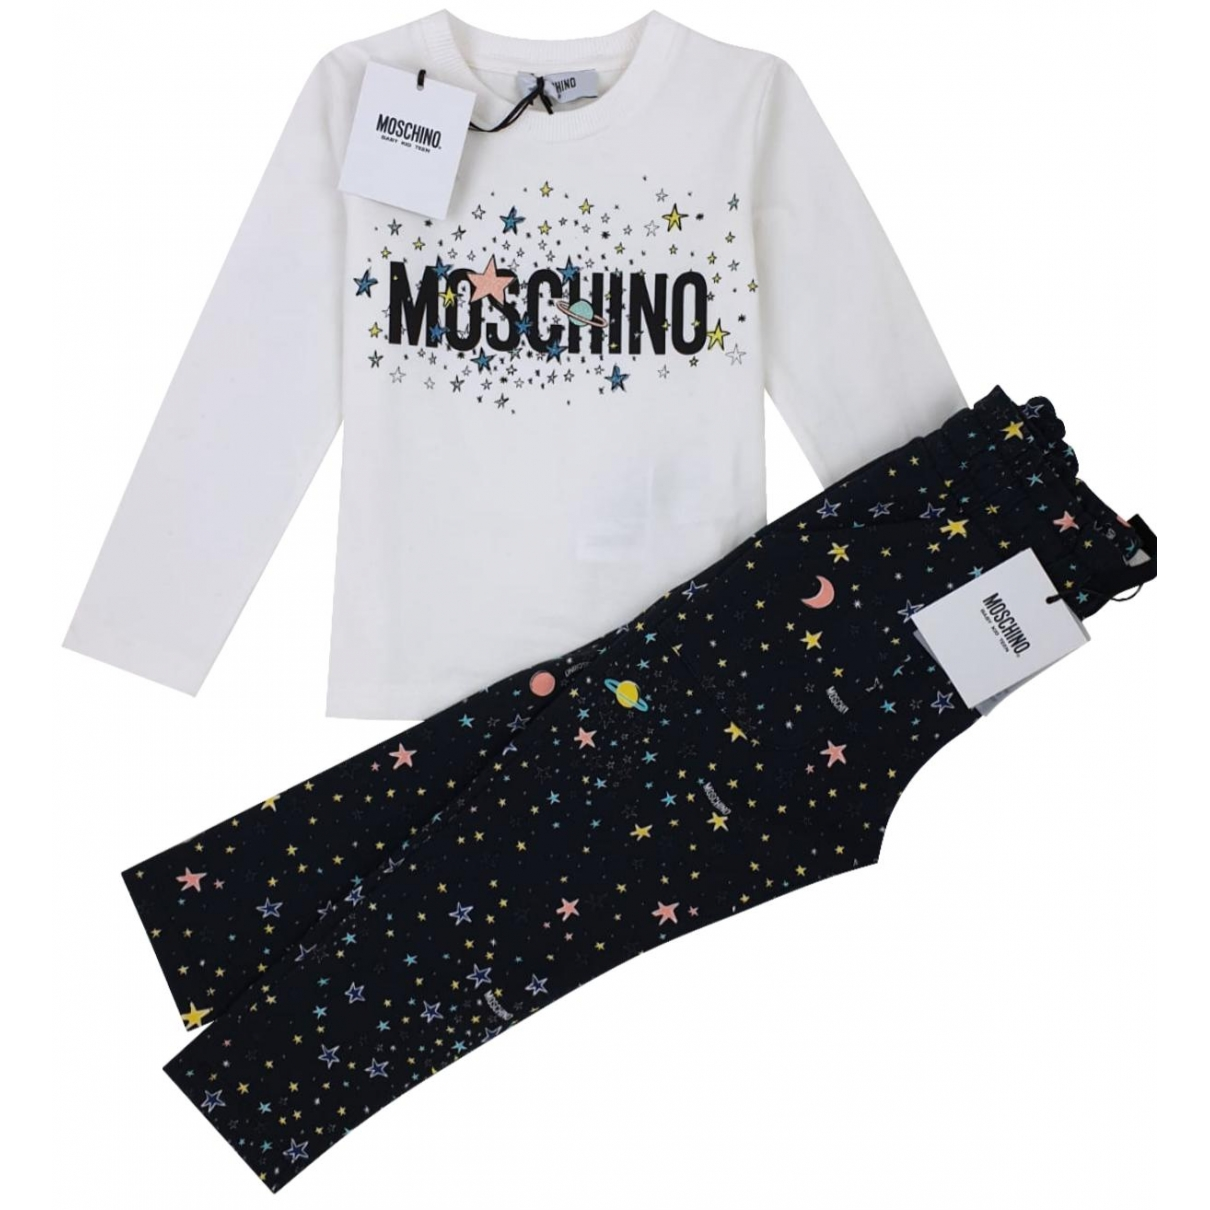 Moschino \N Multicolour Cotton Outfits for Kids 6 years - until 45 inches UK